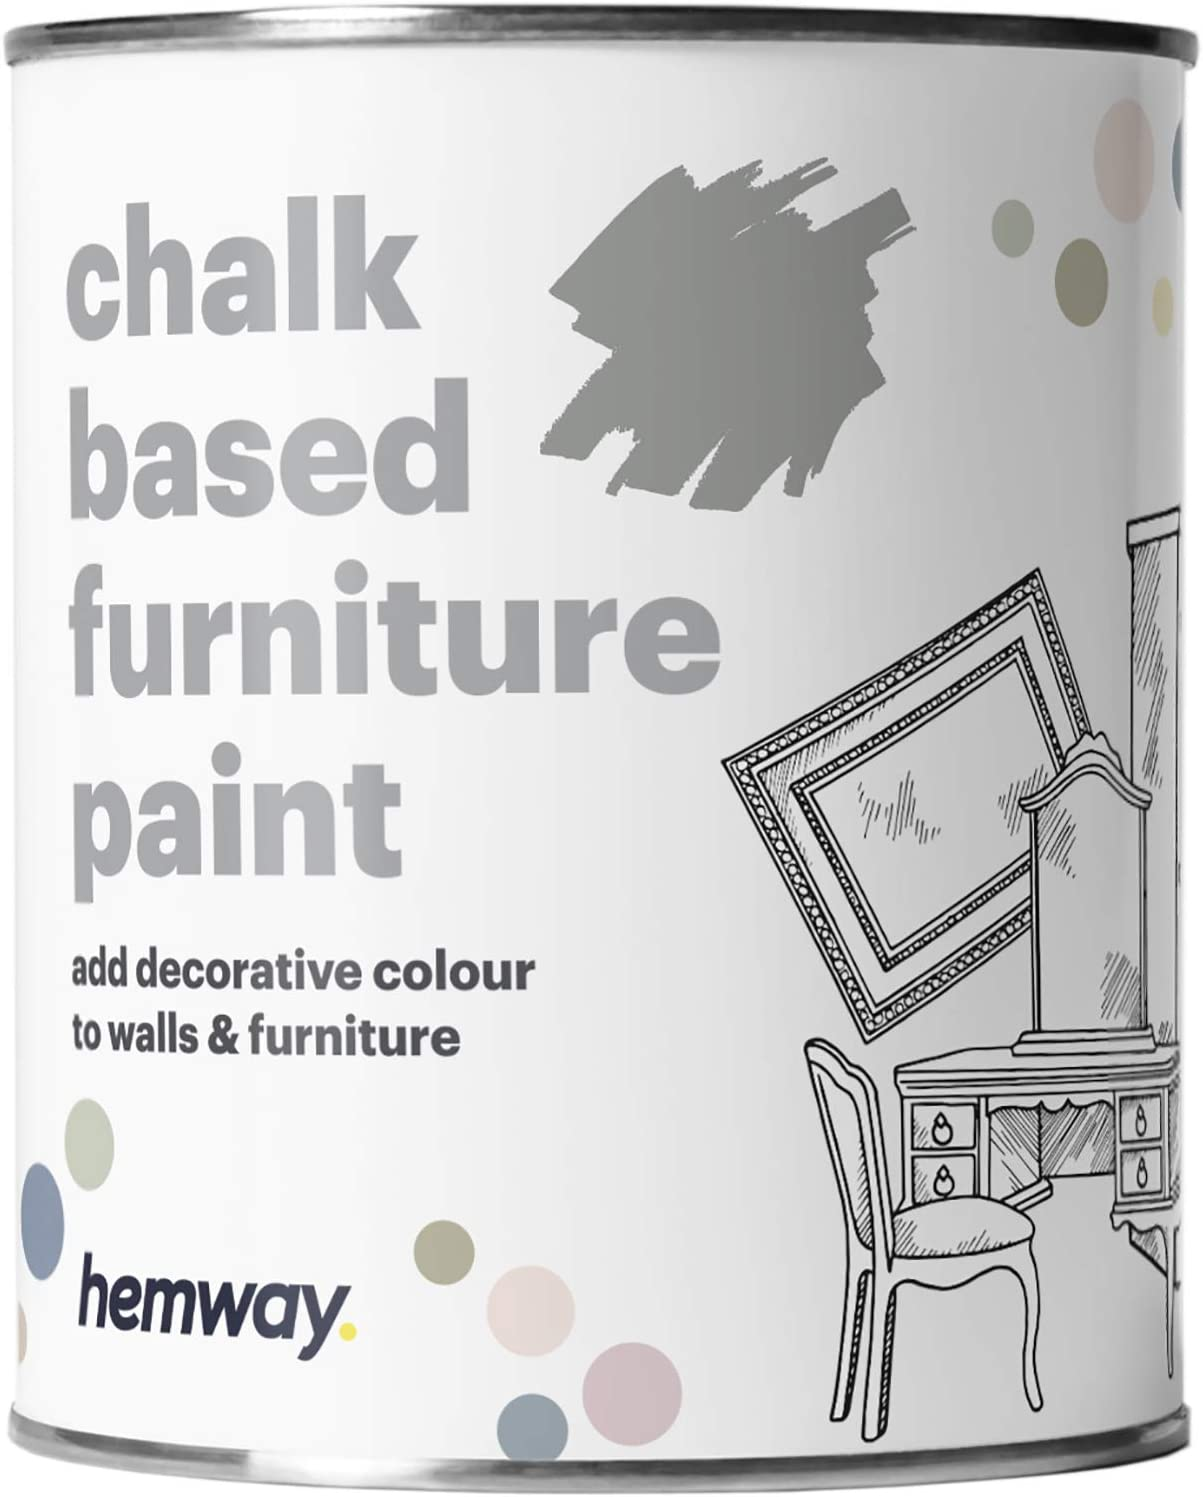 Hemway Dove Grey Chalk Based Furniture Paint Matt Finish Wall and Upcycle DIY Home Improvement 1L / 35oz Shabby Chic Vintage Chalky (50+ Colours Available)